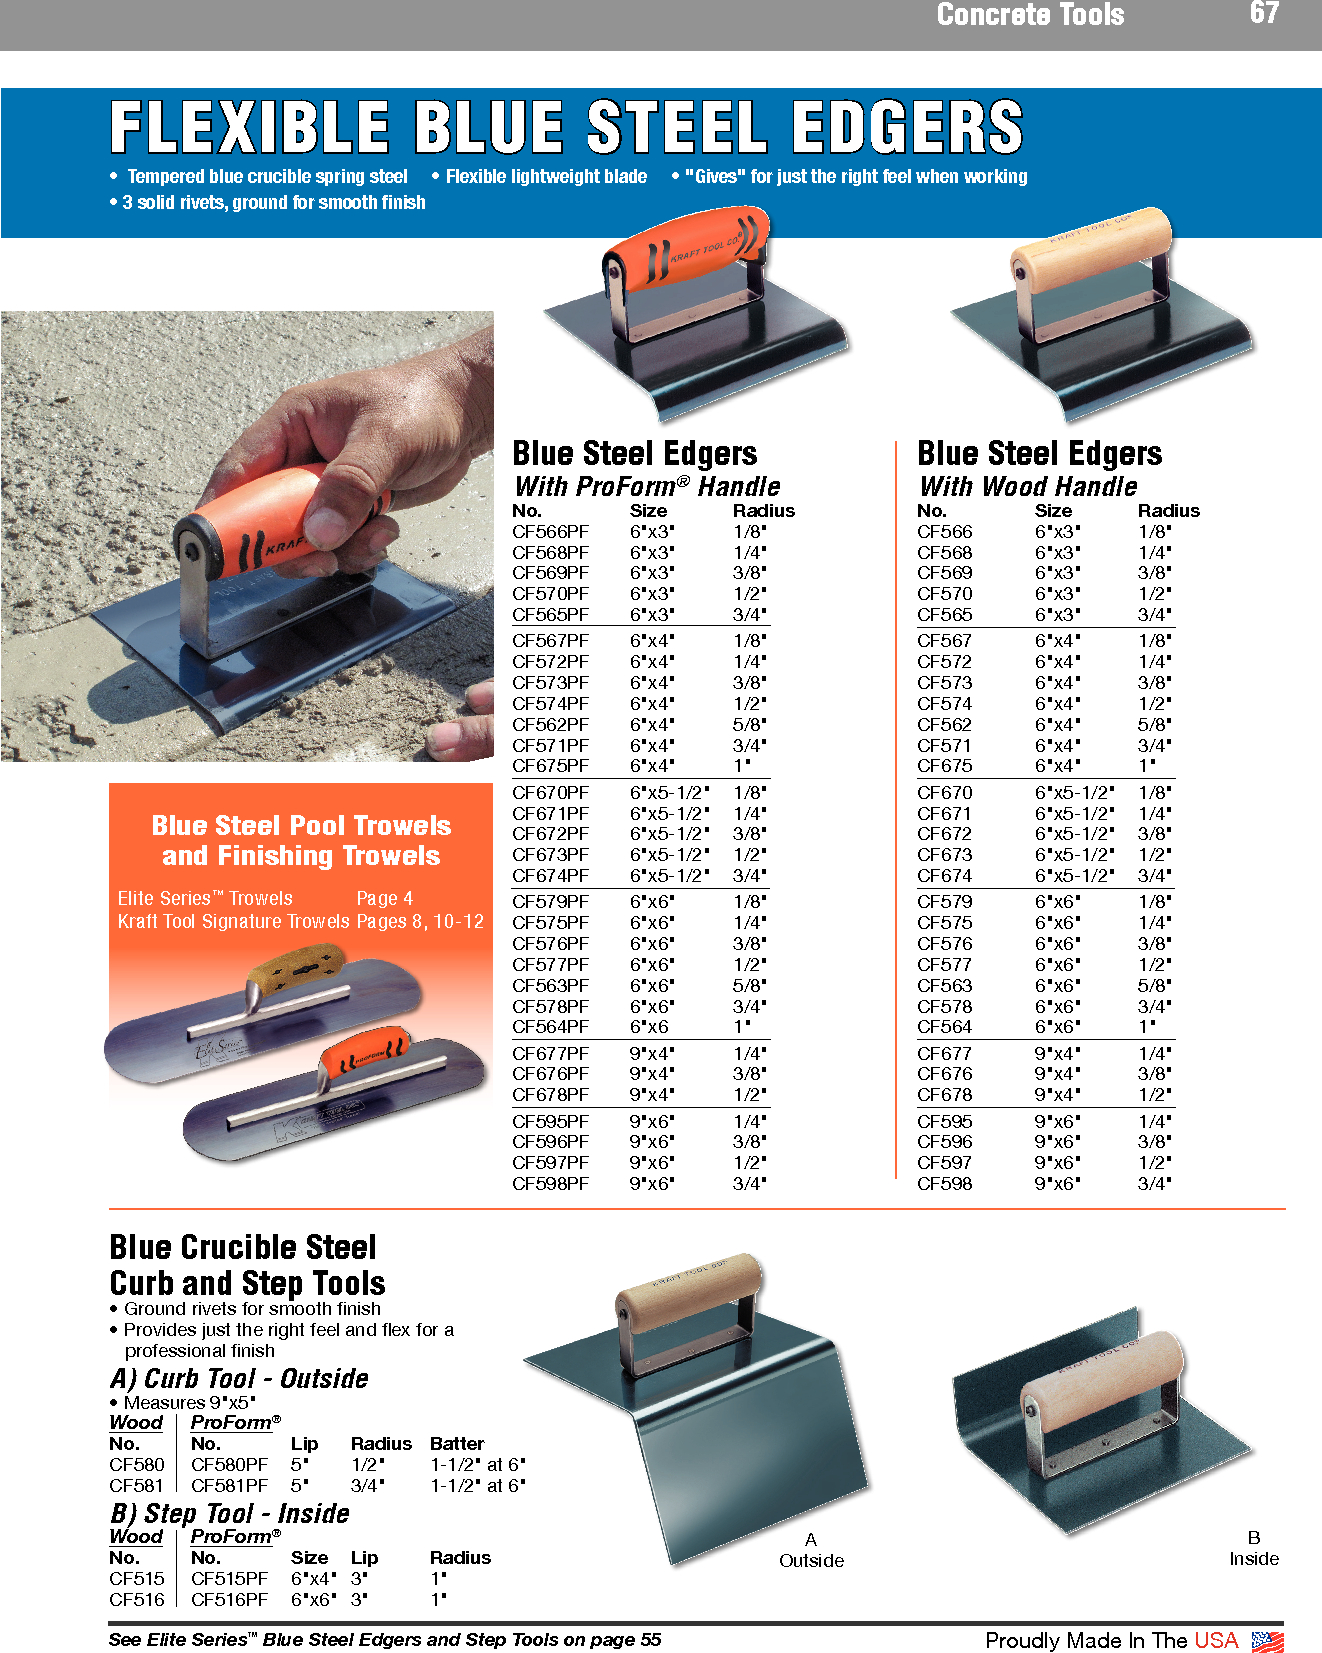 0126CatalogPage1Oct20200067.jpg